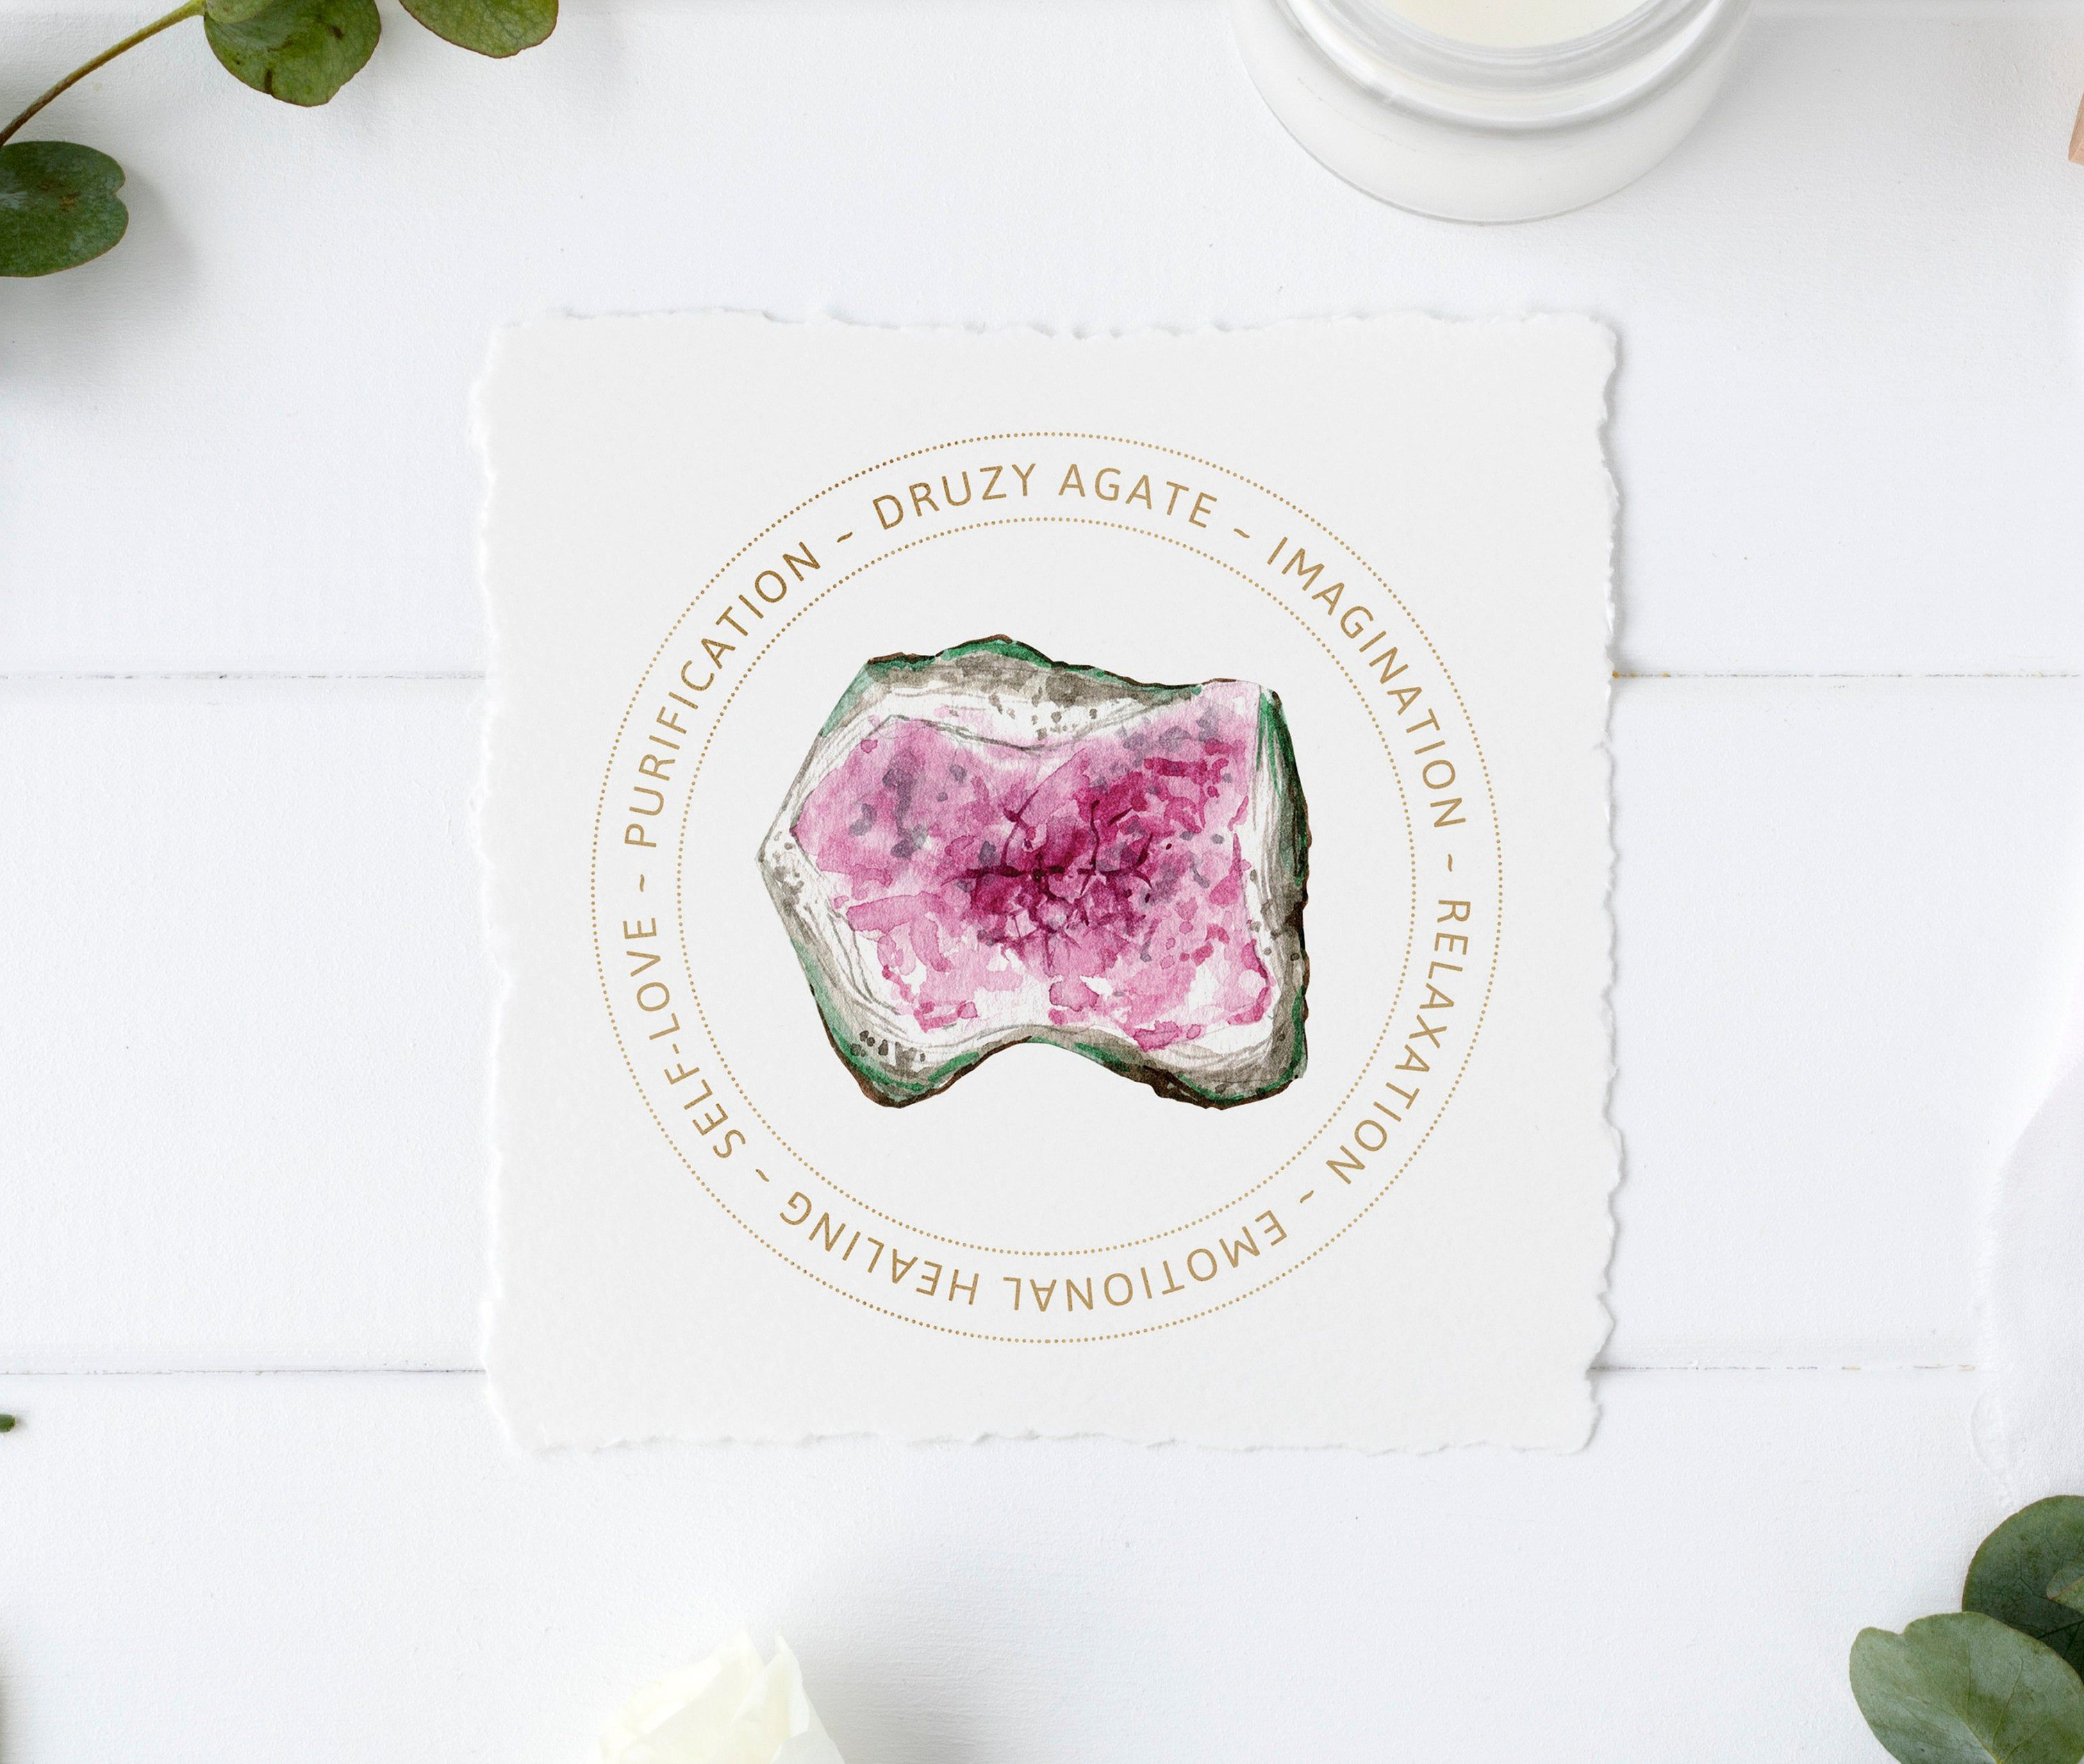 Pink Druzy Agate Jewelry Display Card - Druzy Agate Meaning - Printable - Gemstone Jewelry Card - Gift Box Tag - Purification Stone #gemstonejewelry